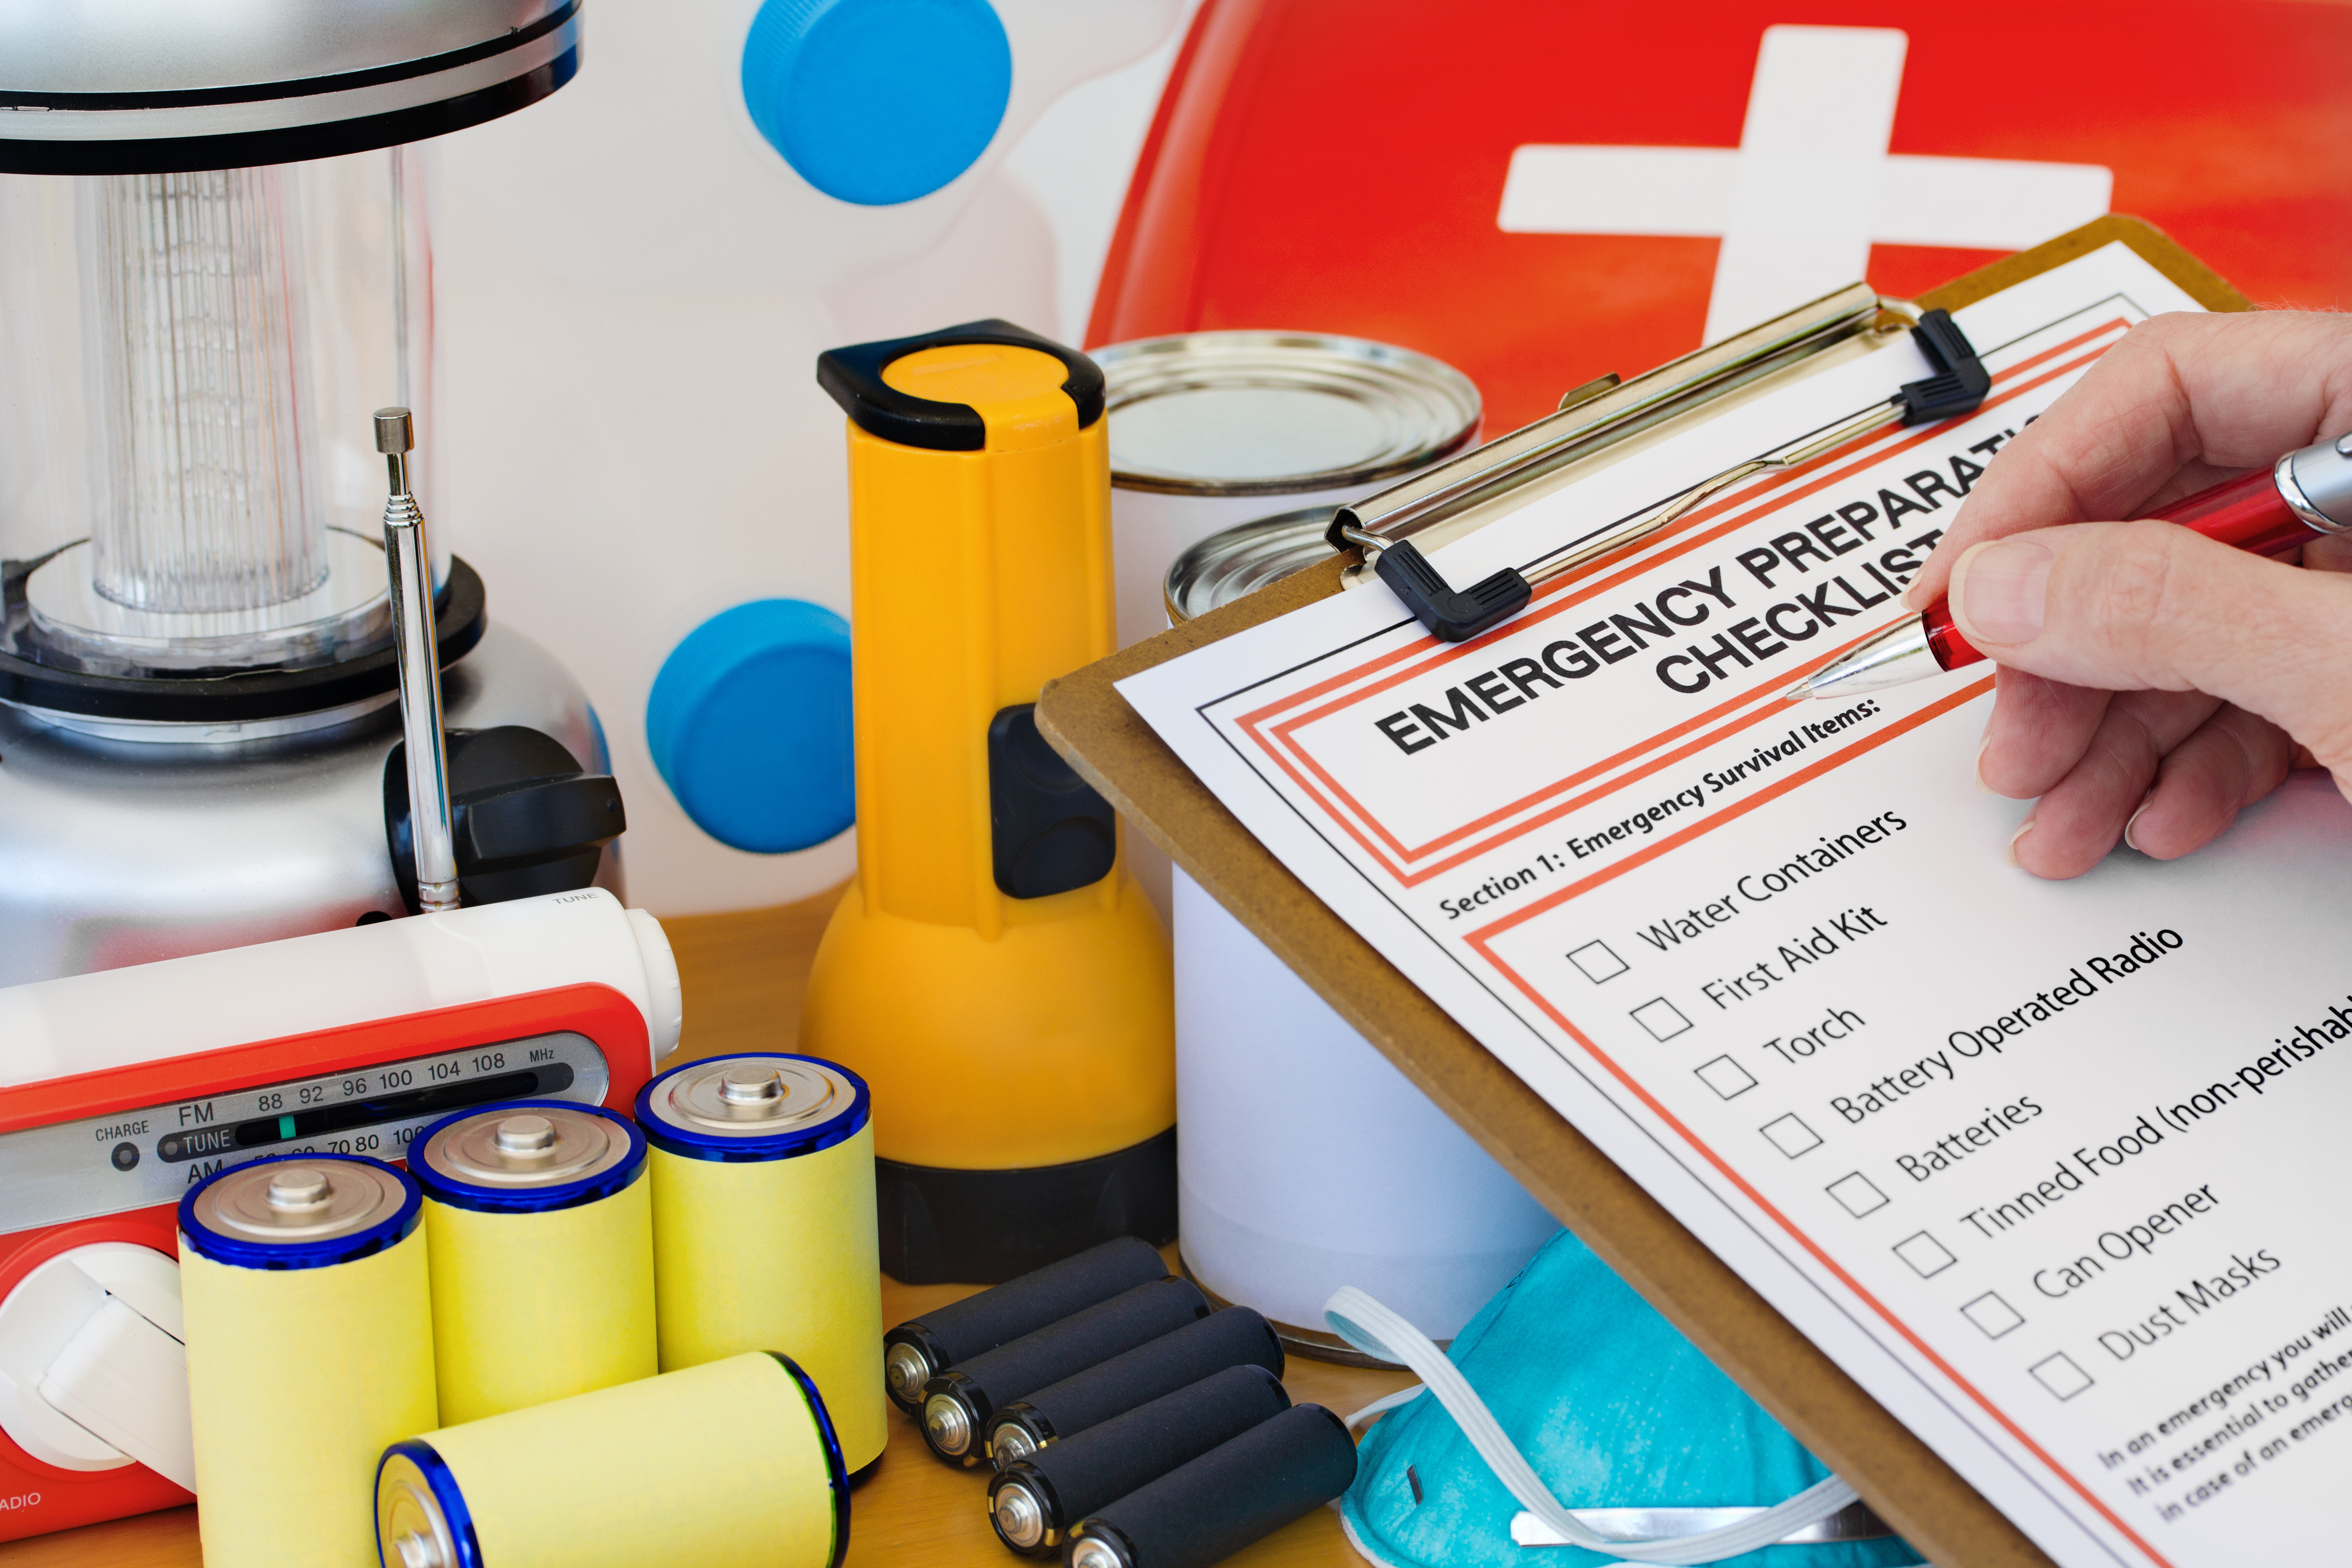 A person completing an emergency preparation list.